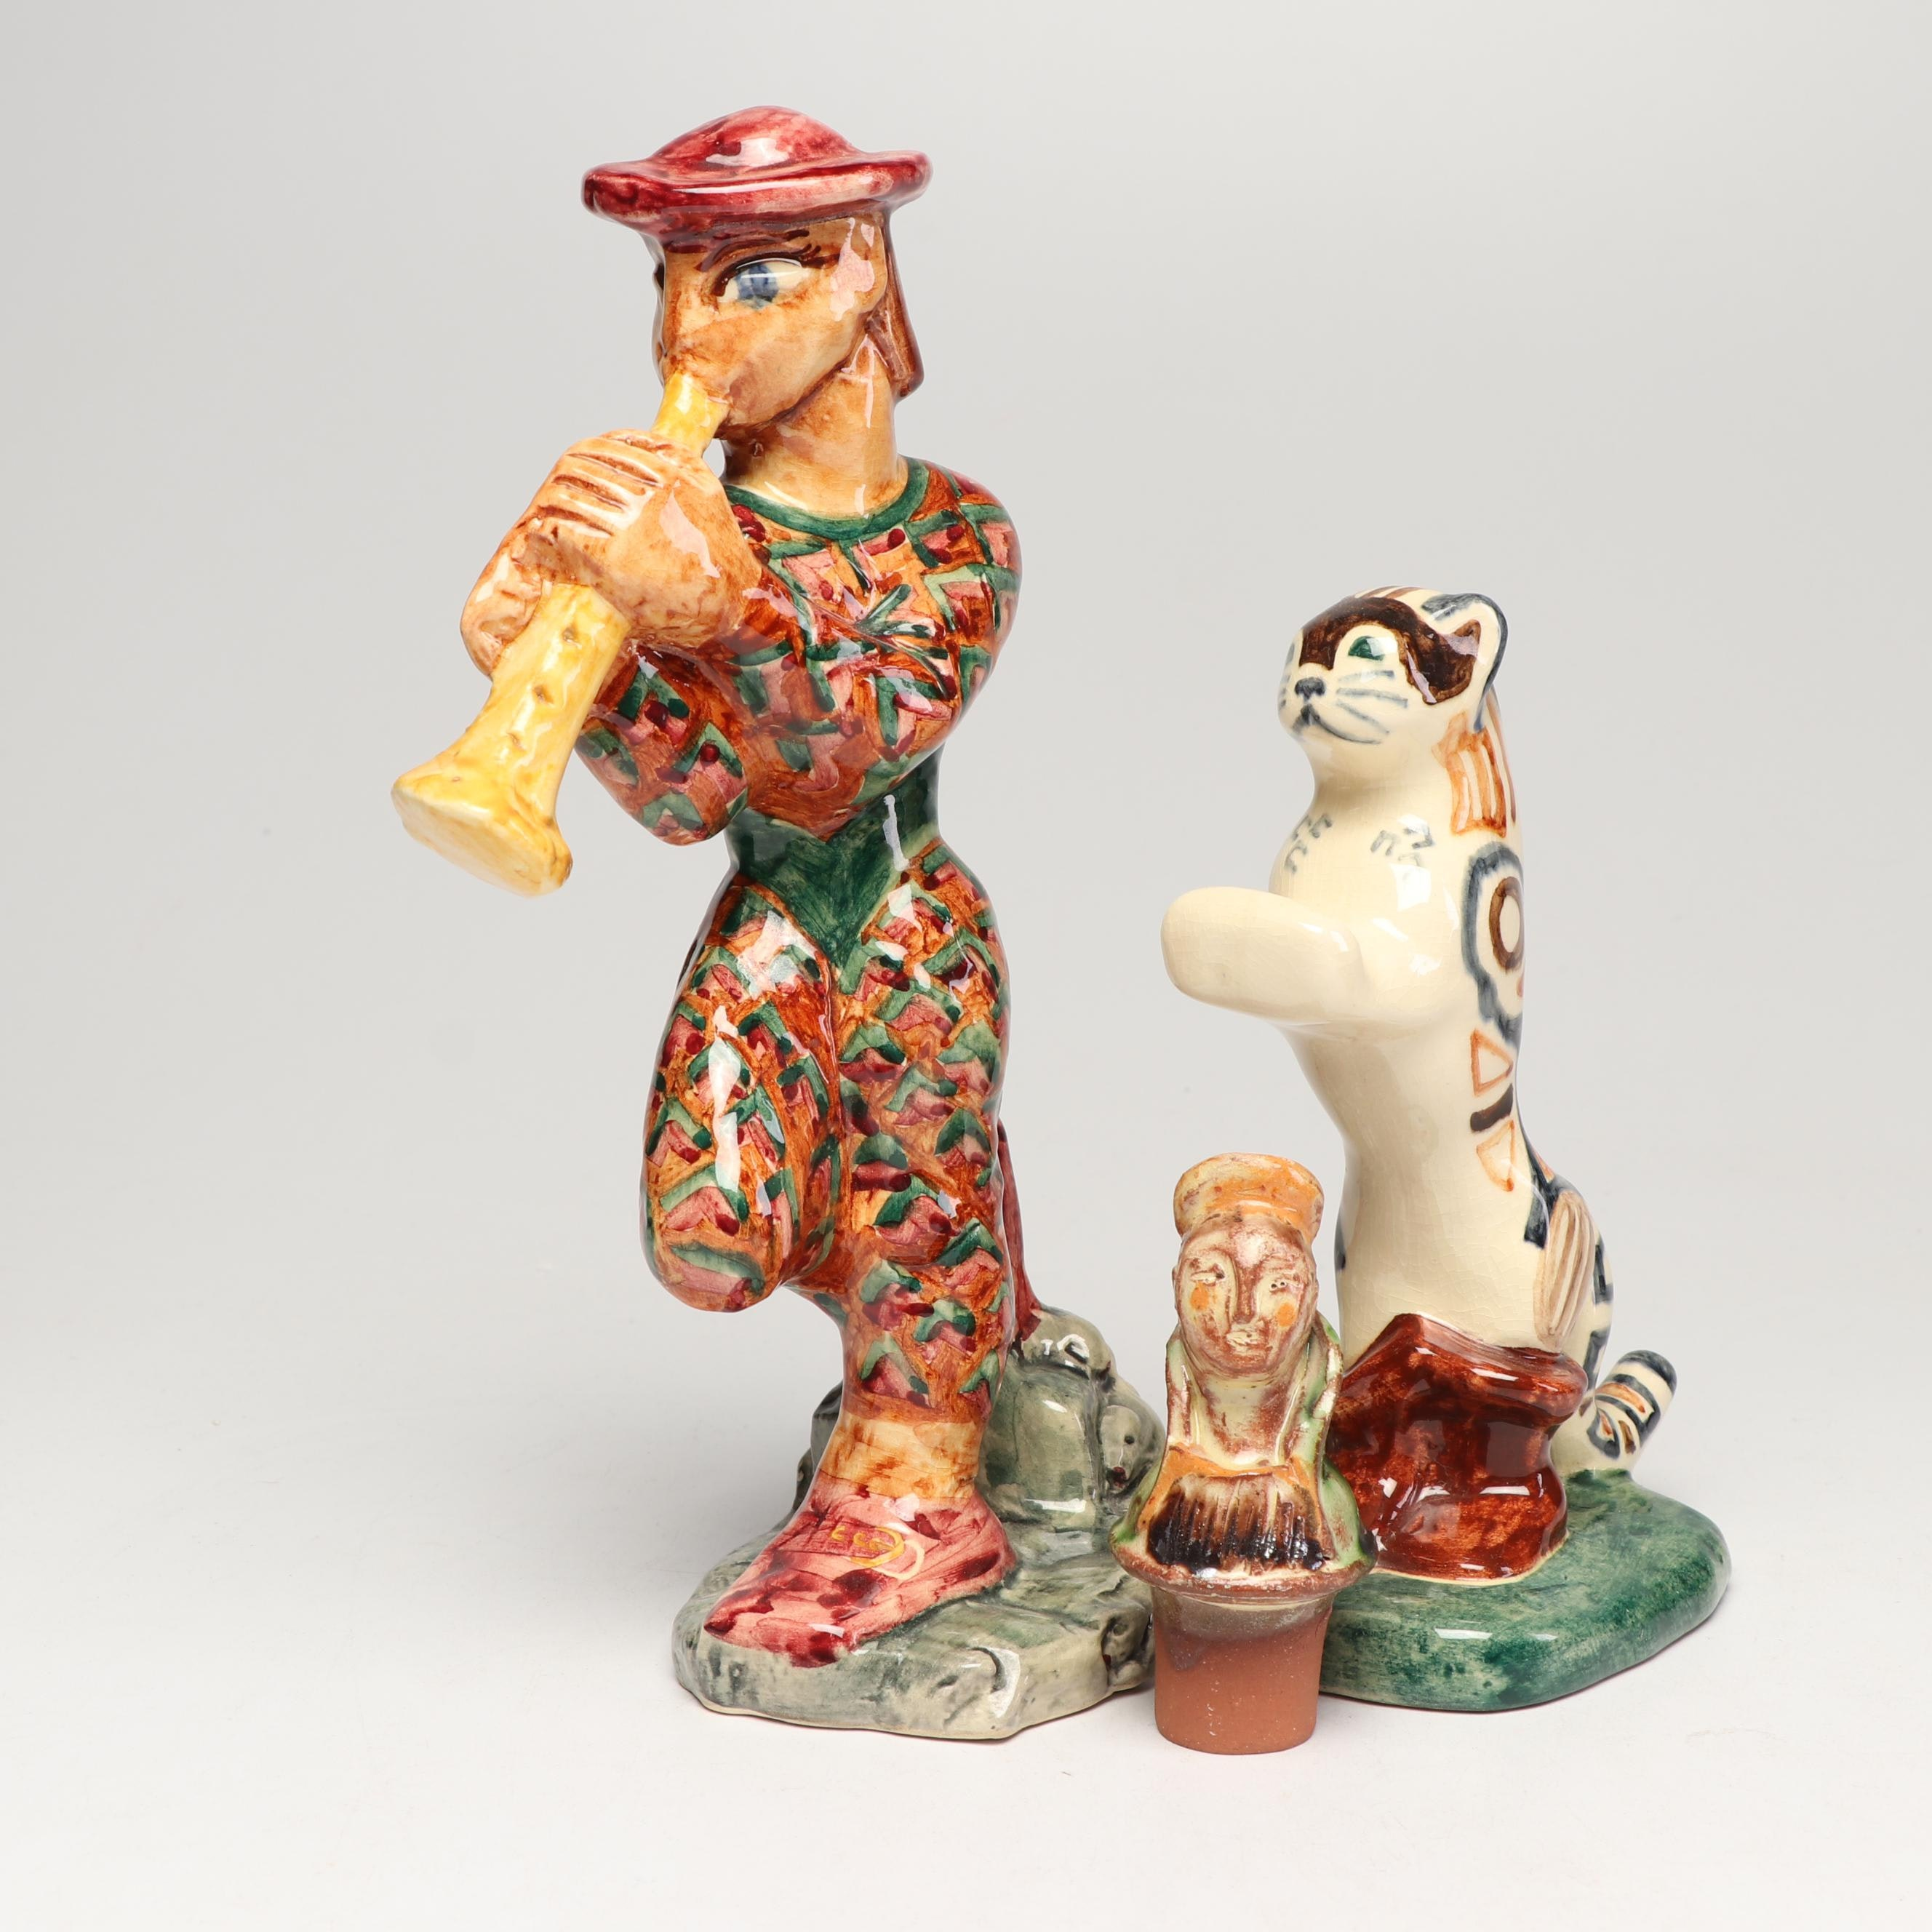 """ShearWater Pottery """"Pied Piper"""" and """"Puss in Boots"""" and Other Figurines, 1990s"""